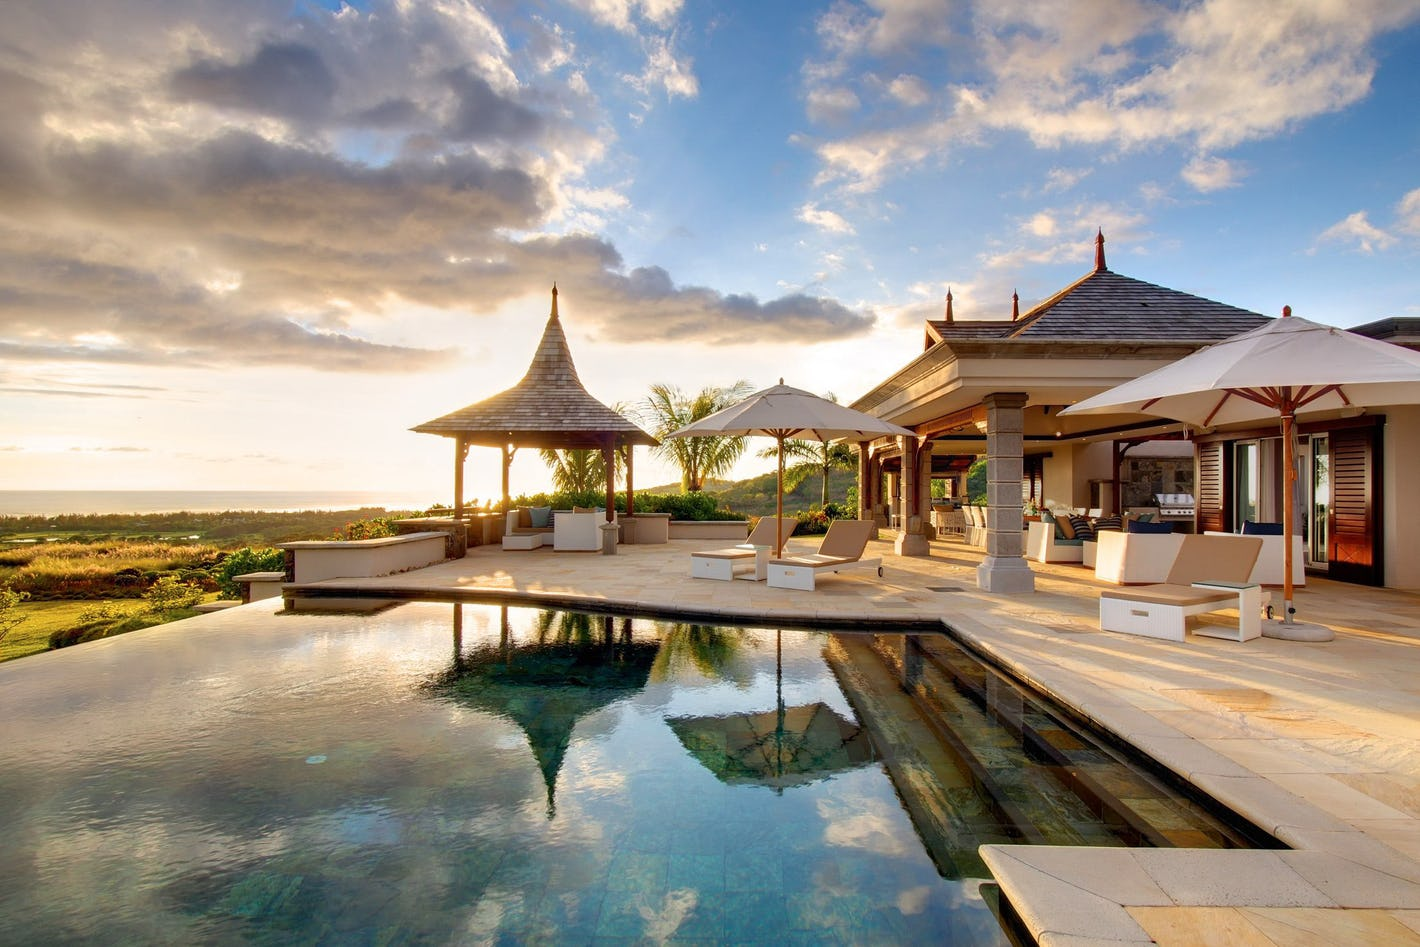 House design mauritius - These Exquisite Villas In Stunning Mauritian Surroundings Offer The Last Word In Luxury Enjoy The